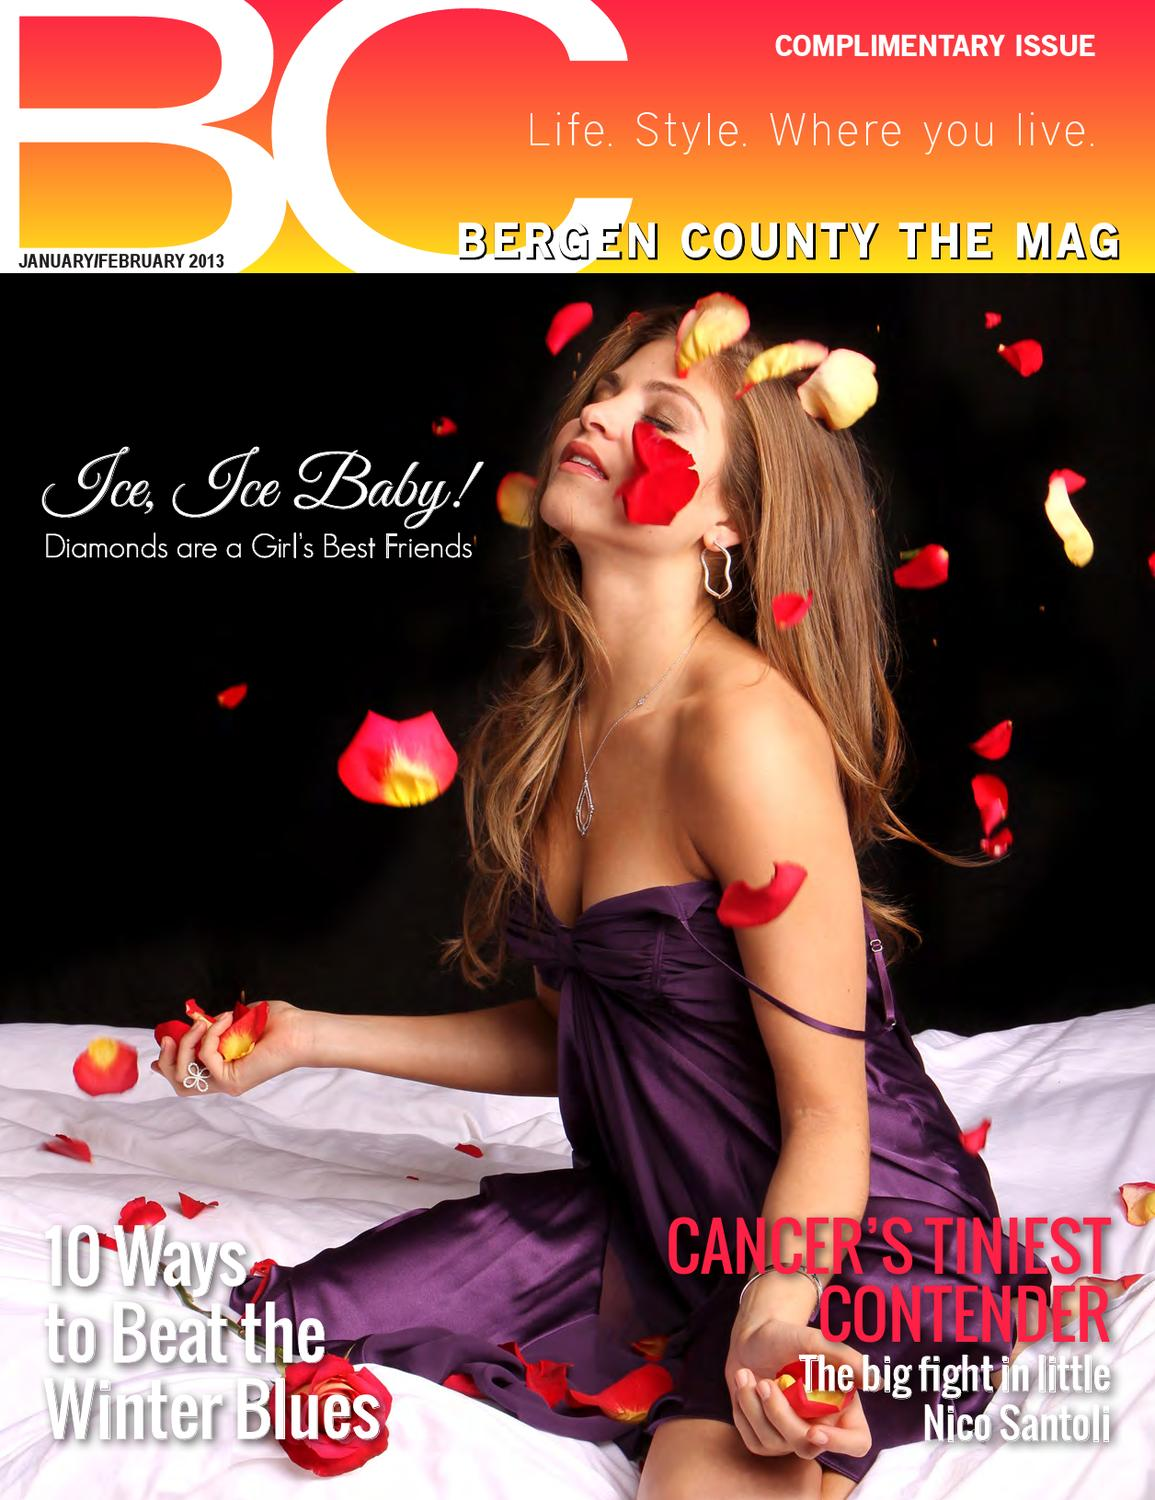 bc the mag late spring by bergen county the magazine issuu bergen county the magazine 2013